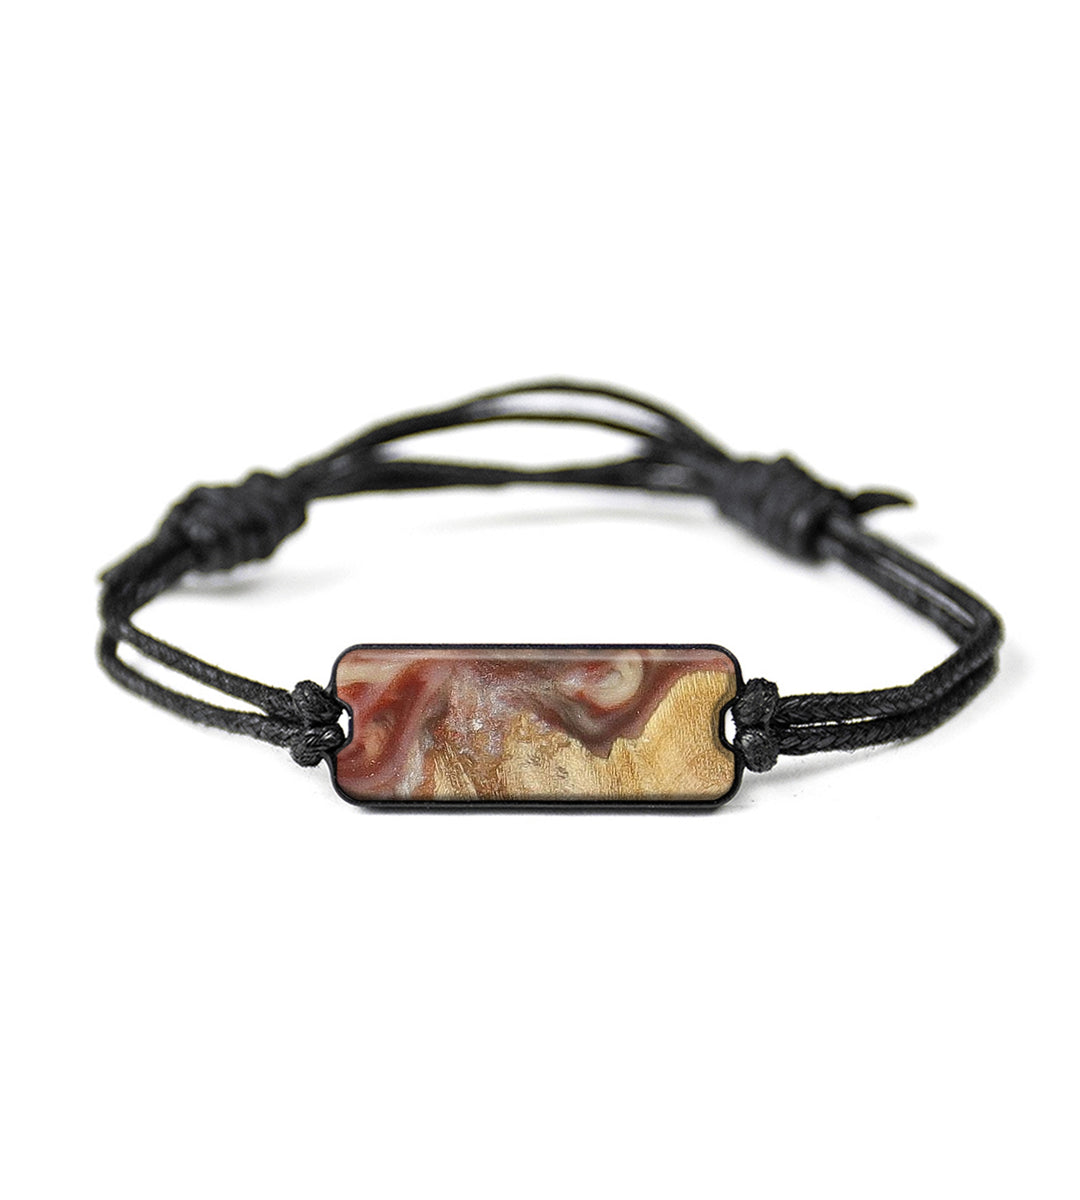 Classic Wood+Resin Bracelet - Pankesh (Dark Red, 358243)